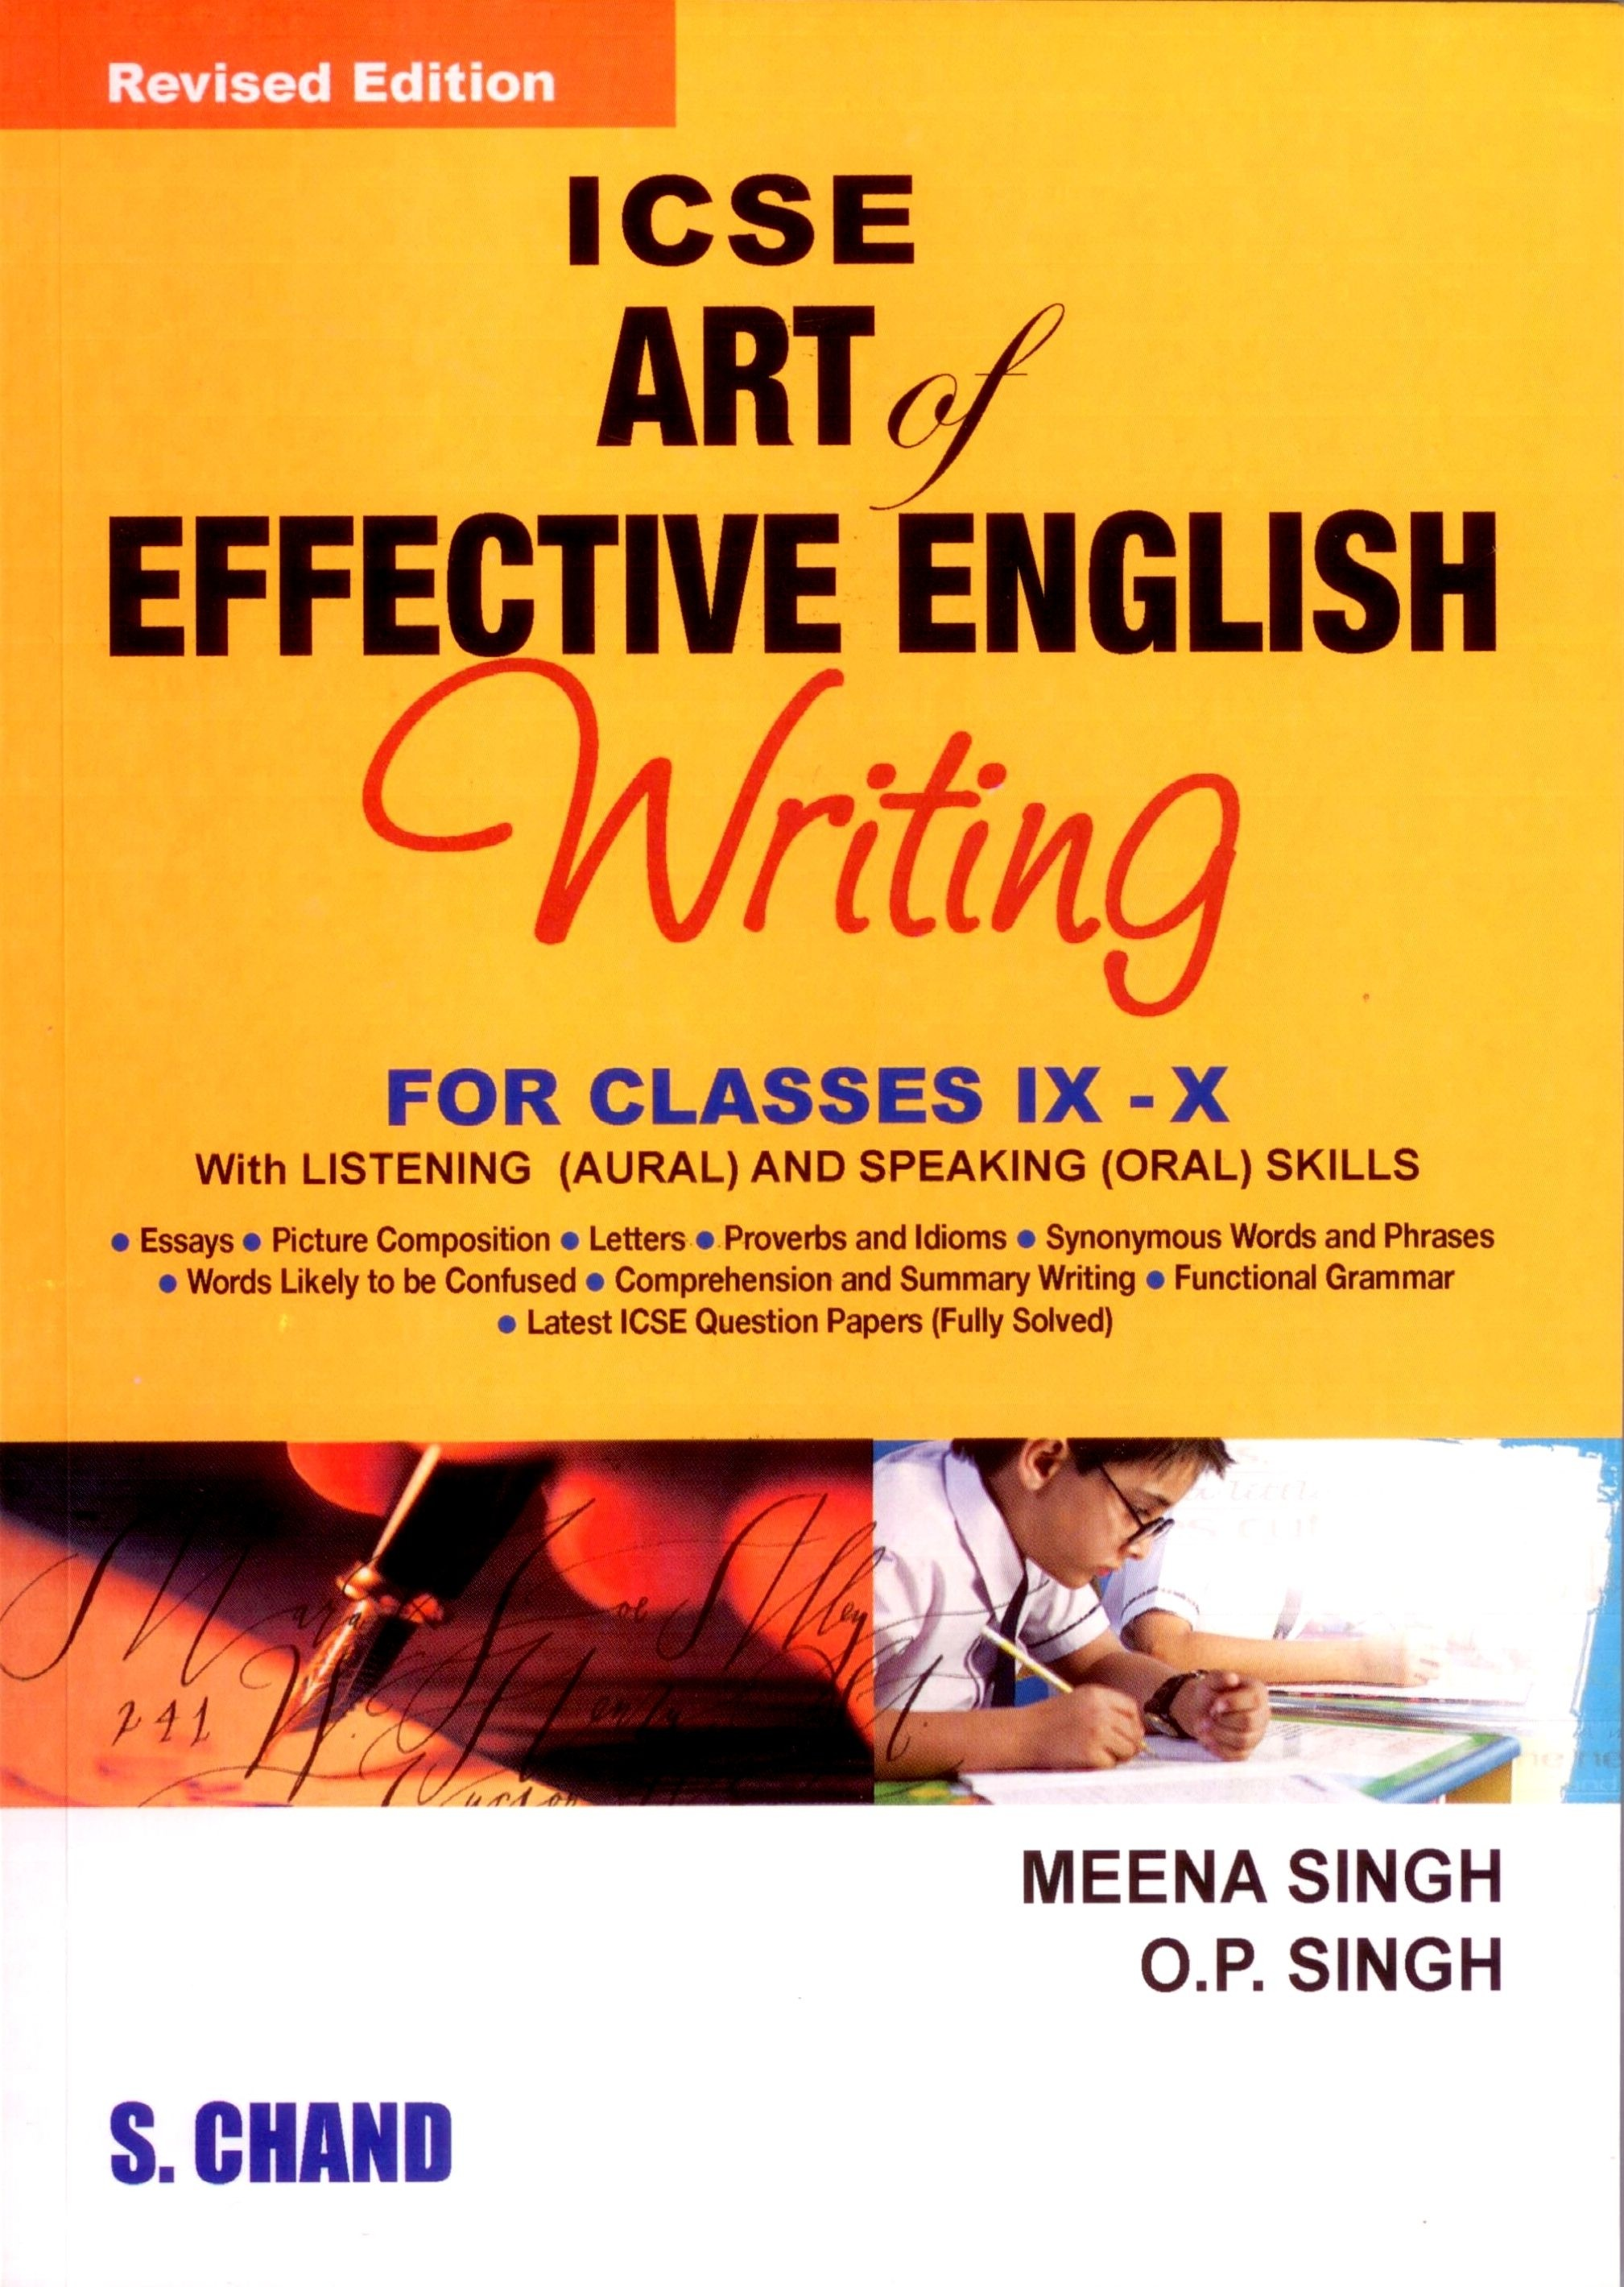 best english essay topics sample toefl writing topicssample toefl best essay books for icse essay topicsicse art of effective english writing for cles ix x